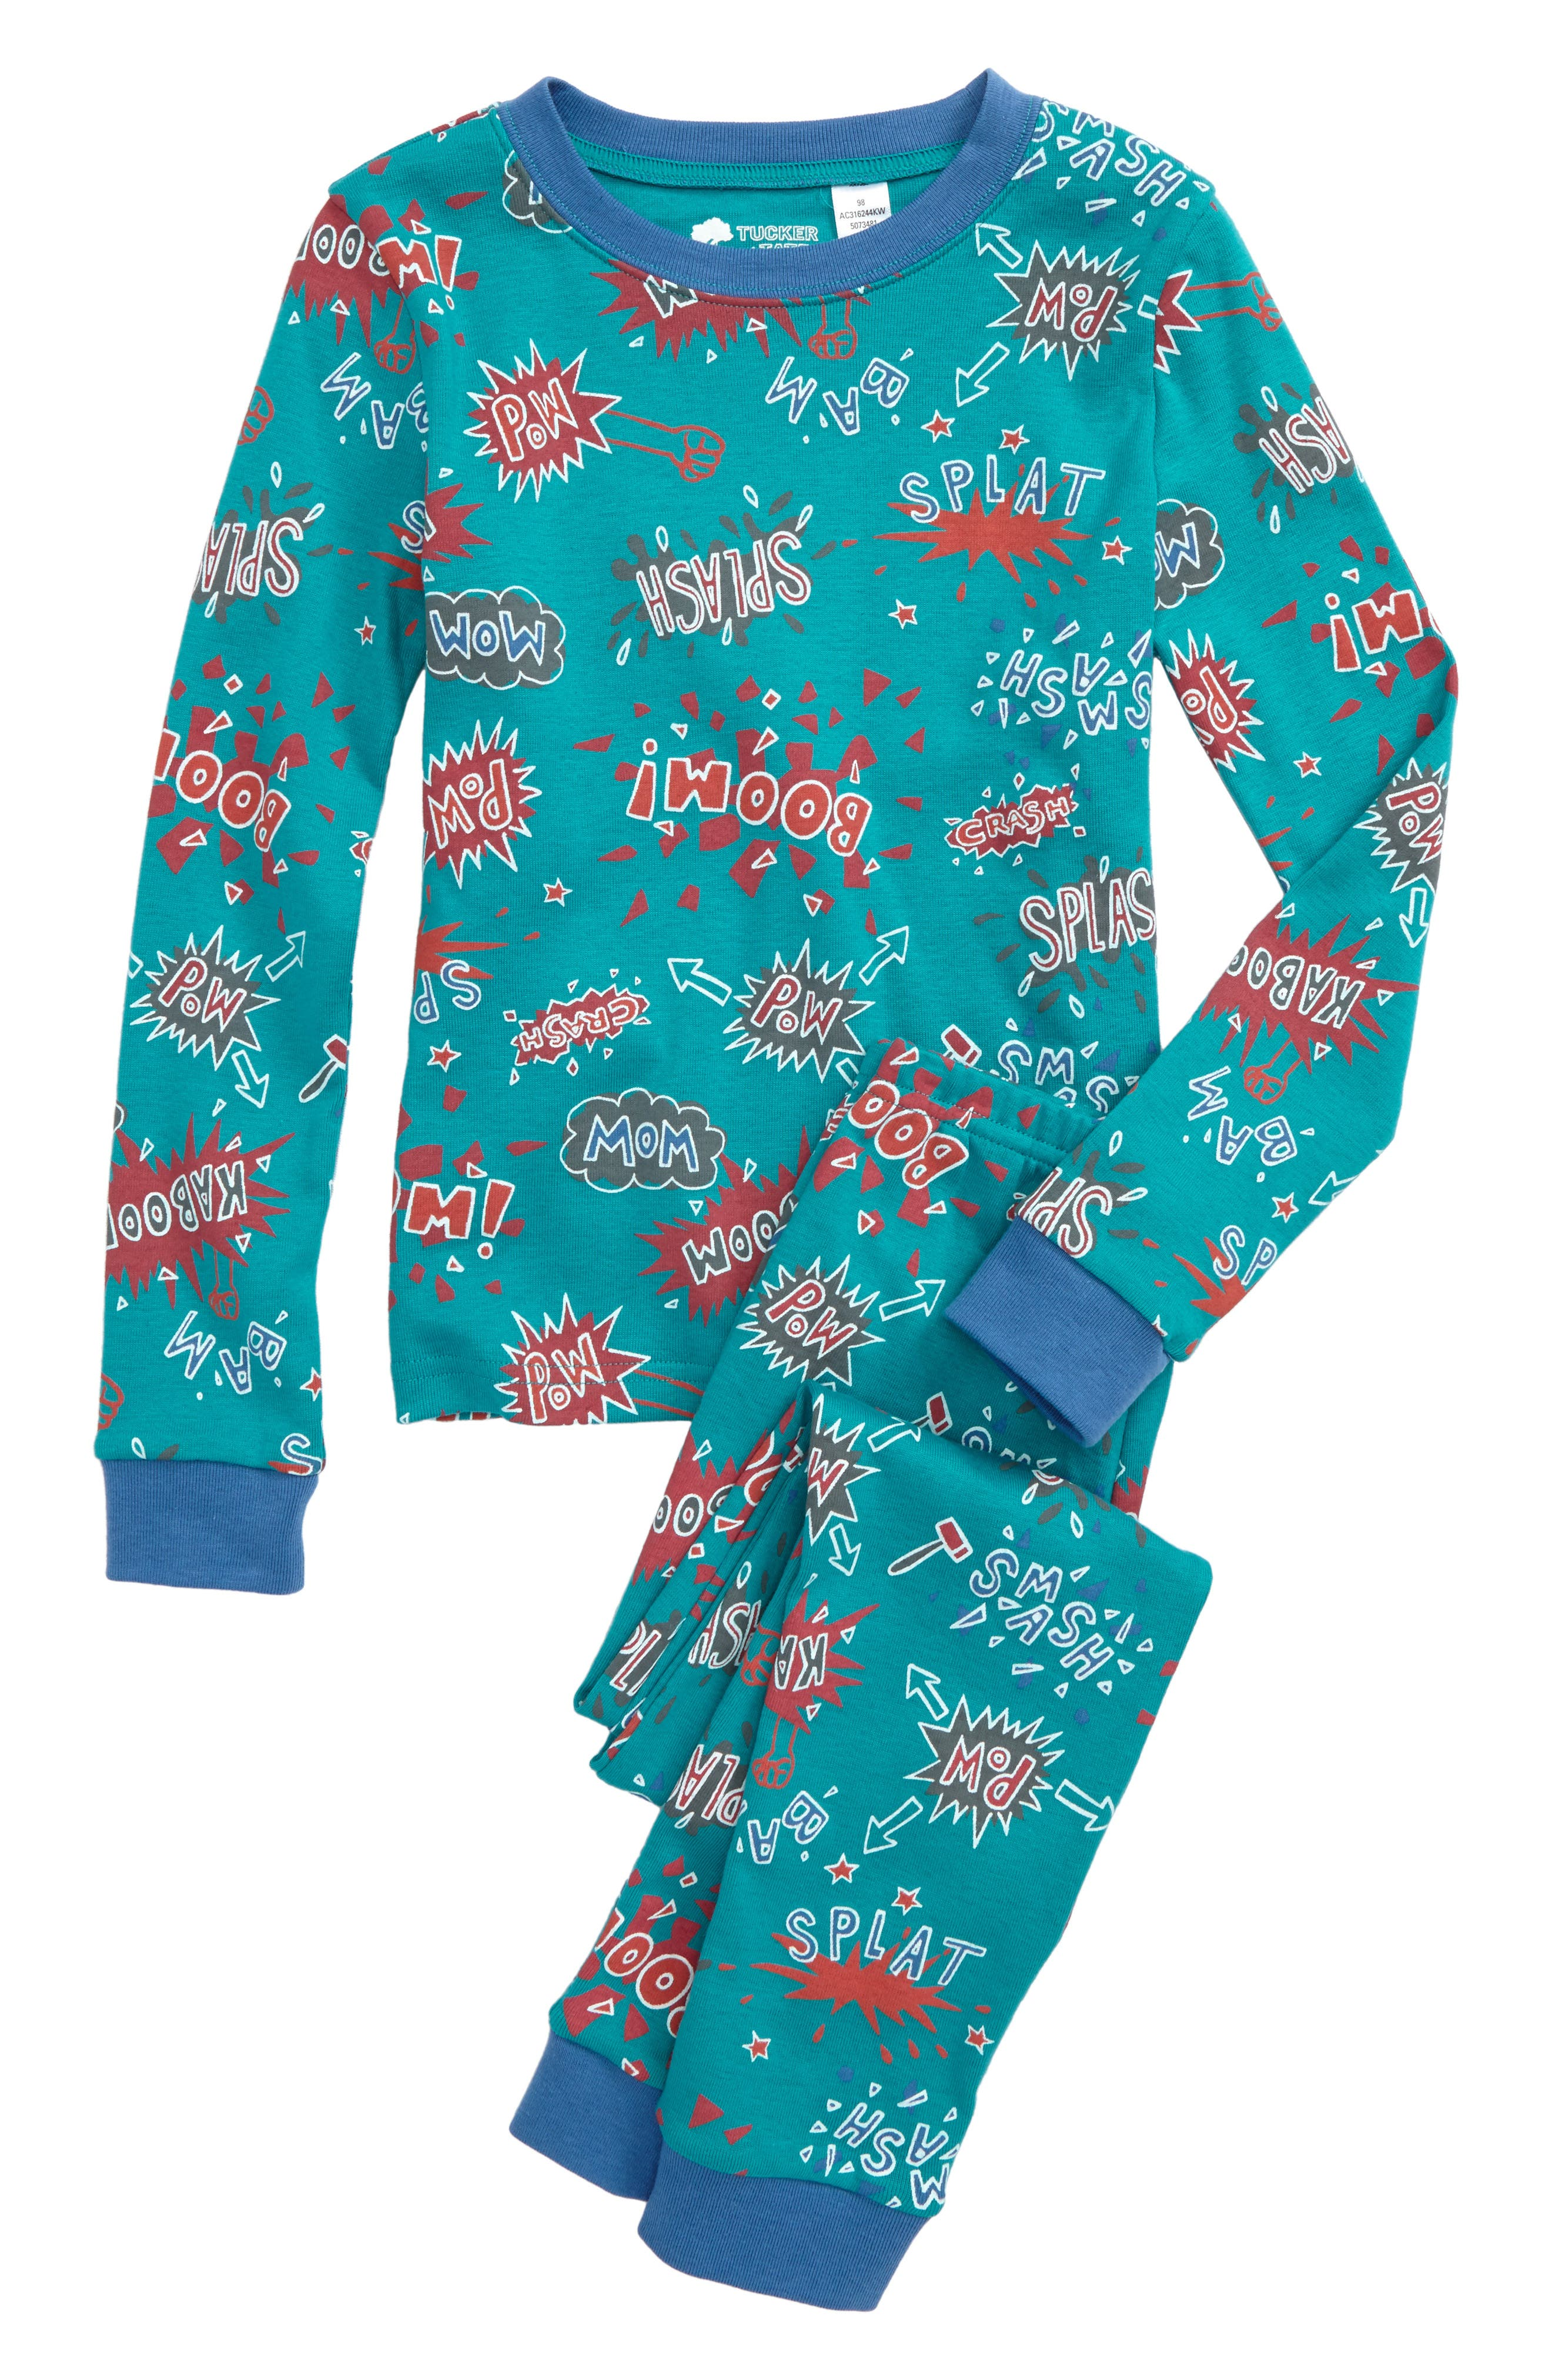 Fitted Two-Piece Pajamas,                         Main,                         color, Blue Tile Comic